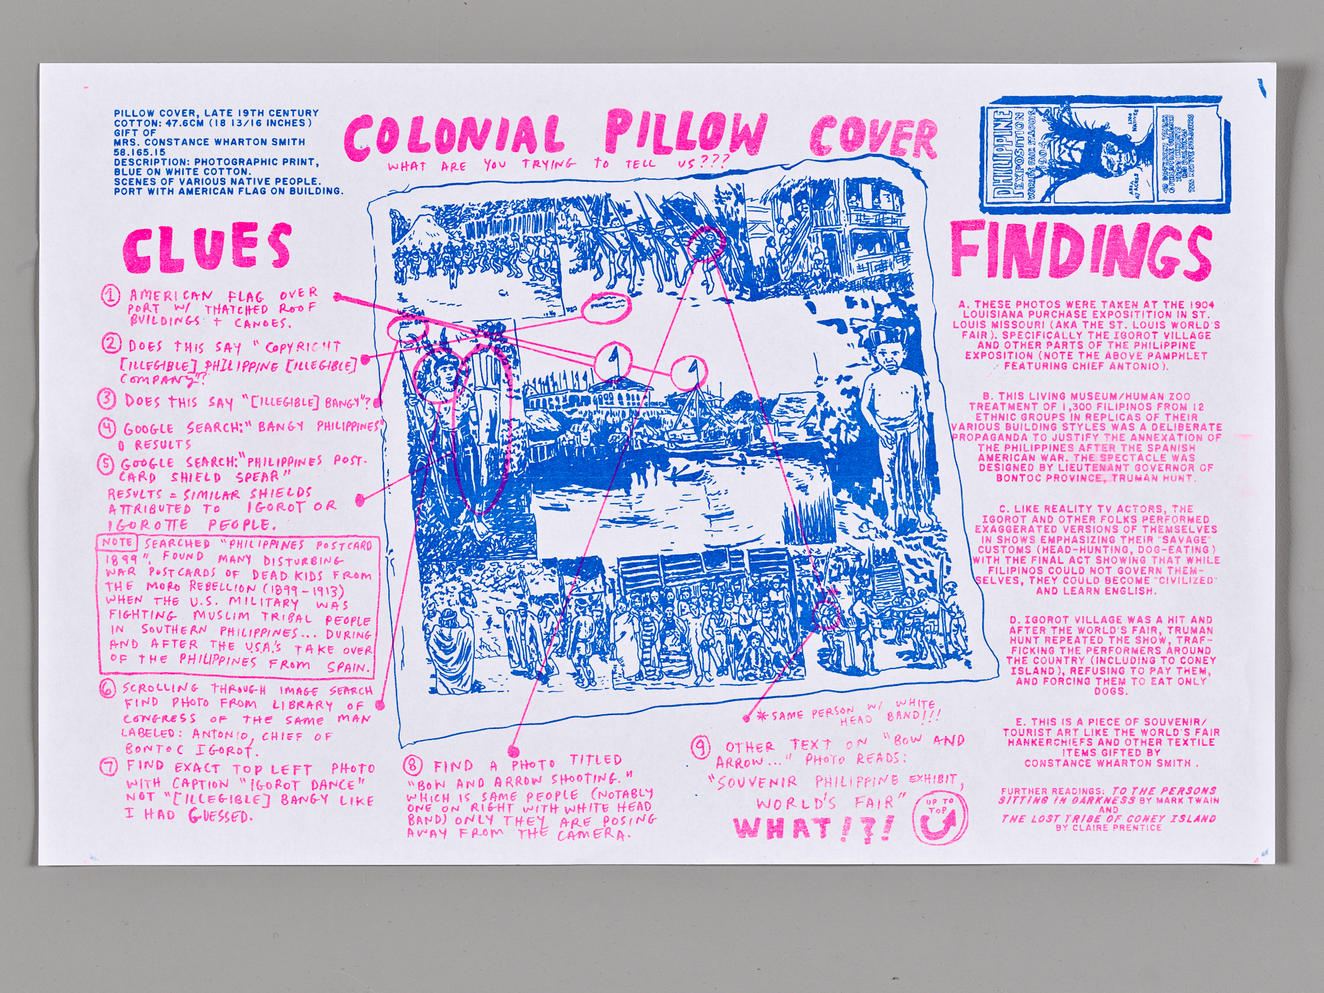 Screenprinted graphic of Colonial pillow case created by Walker Mettling. Contains clues and findings for his research.